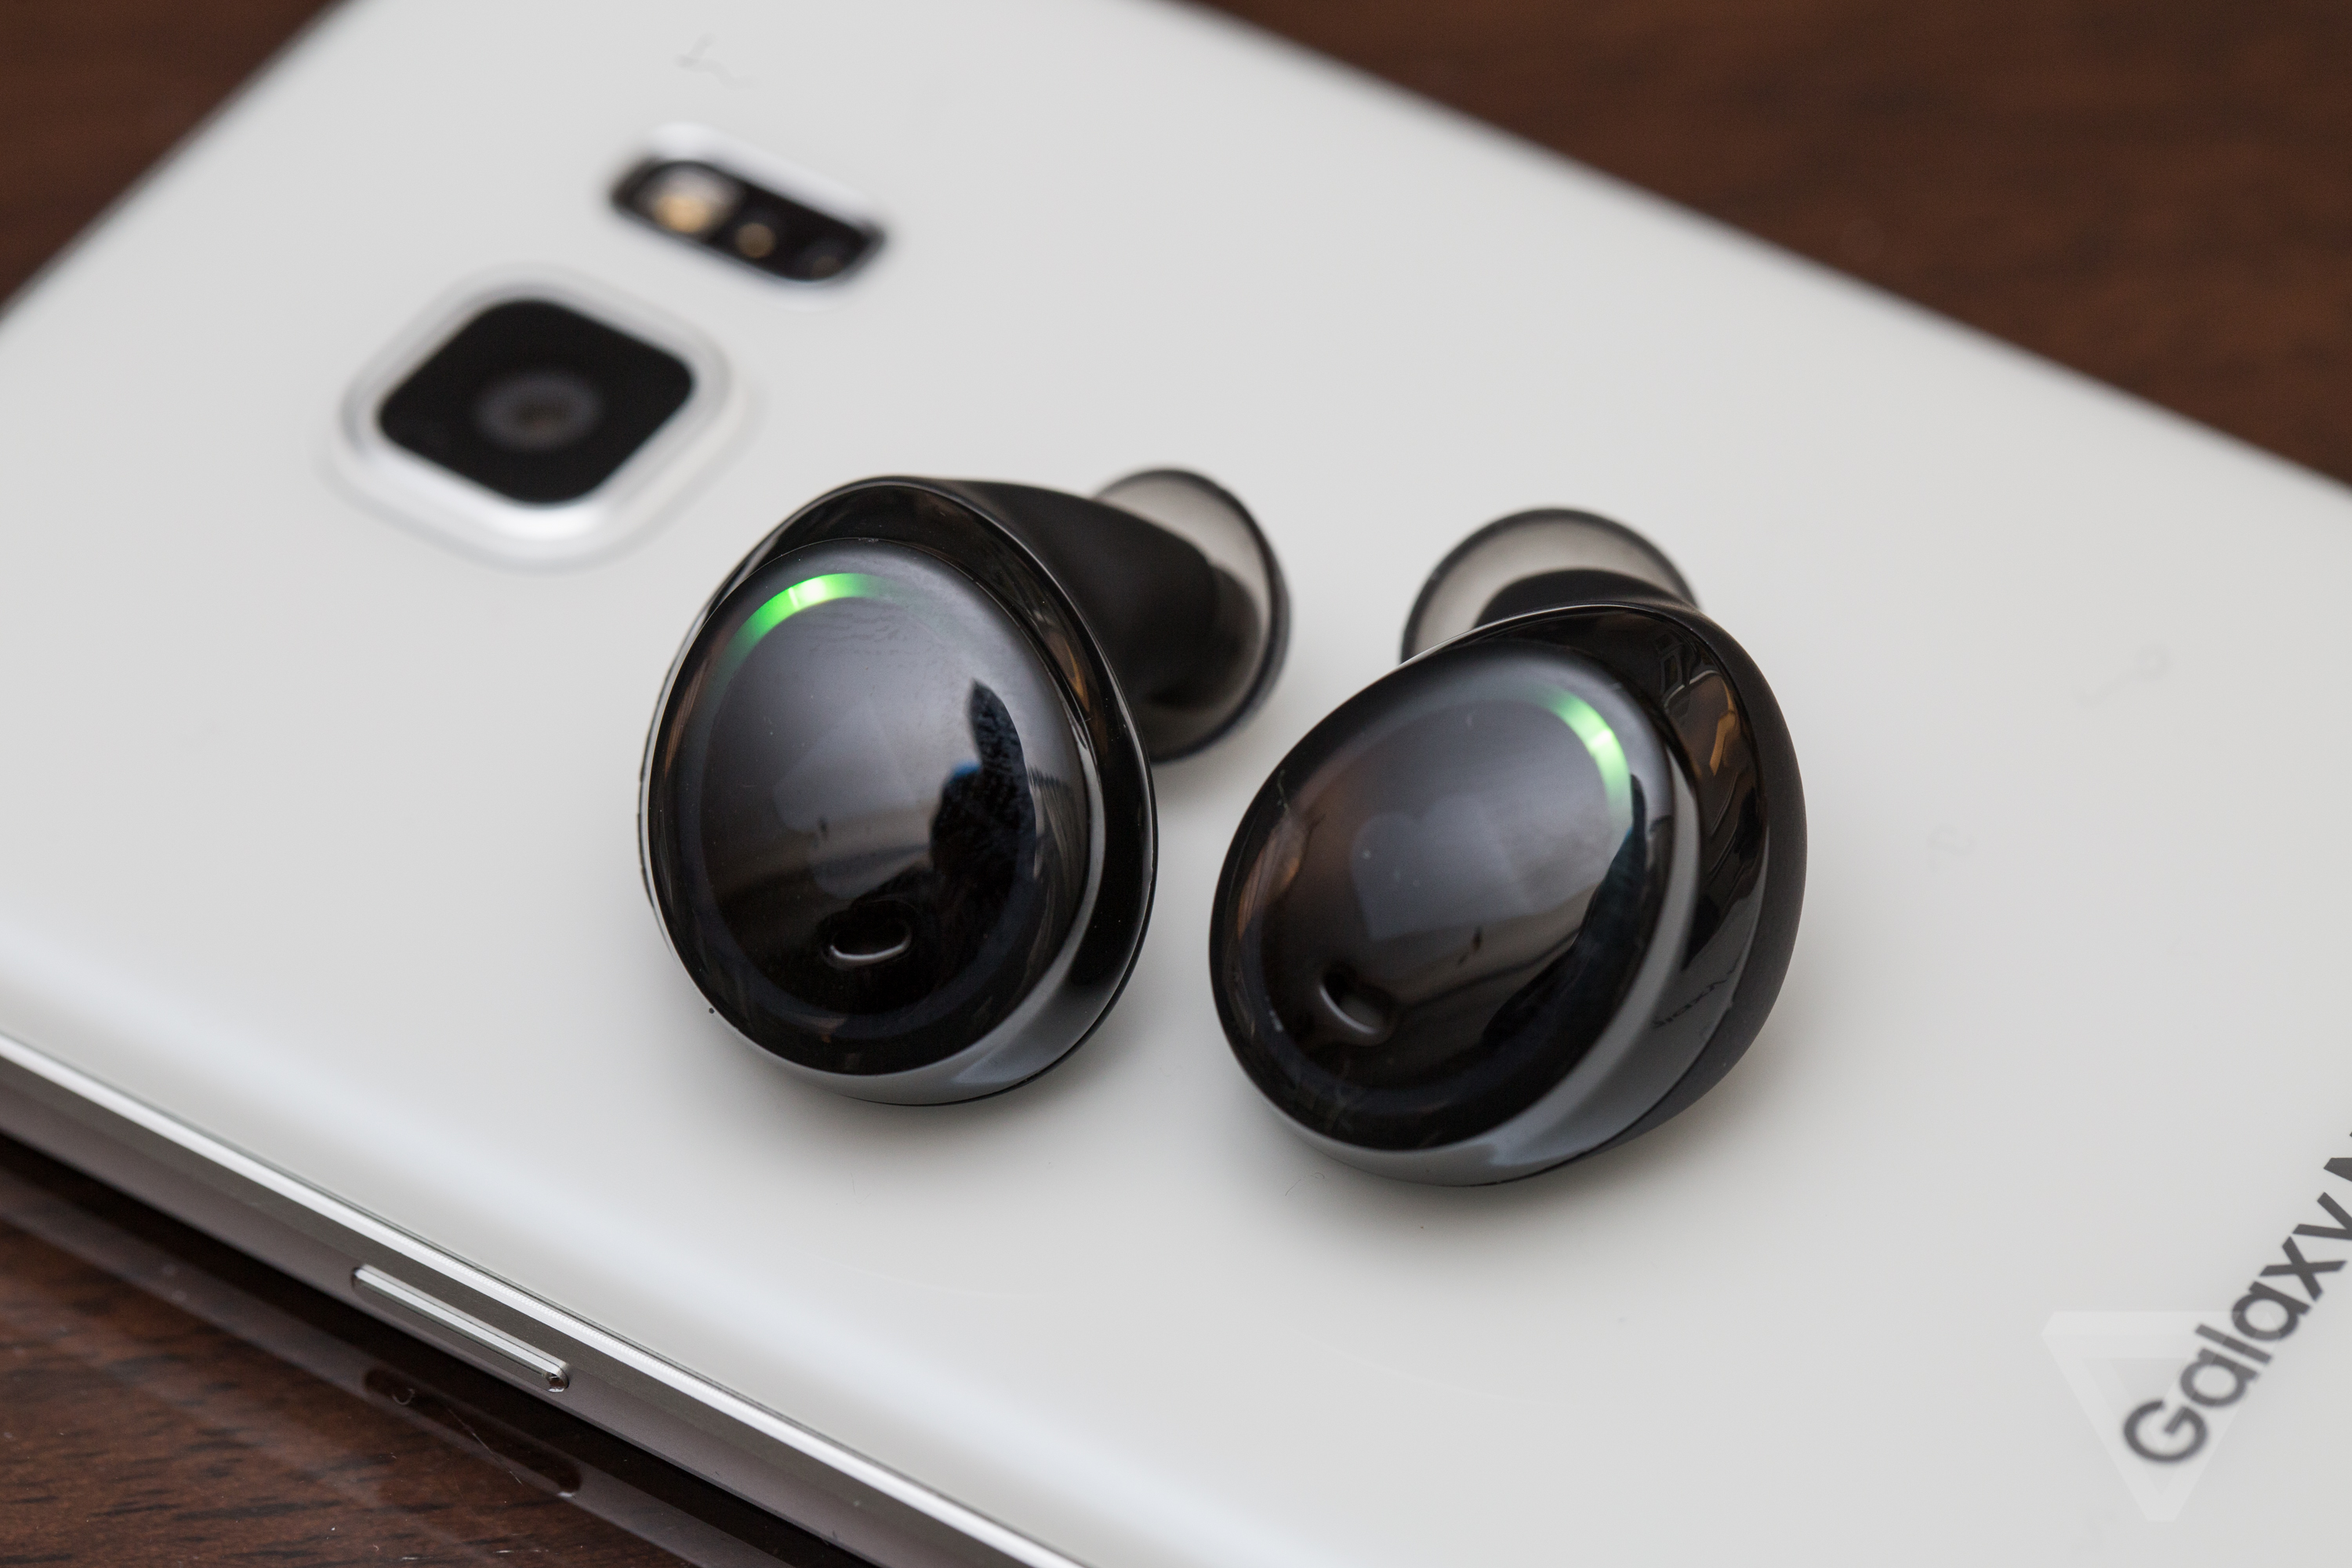 samsung galaxy s8 to come with wireless ear plus device won 39 t feature headphone jack. Black Bedroom Furniture Sets. Home Design Ideas